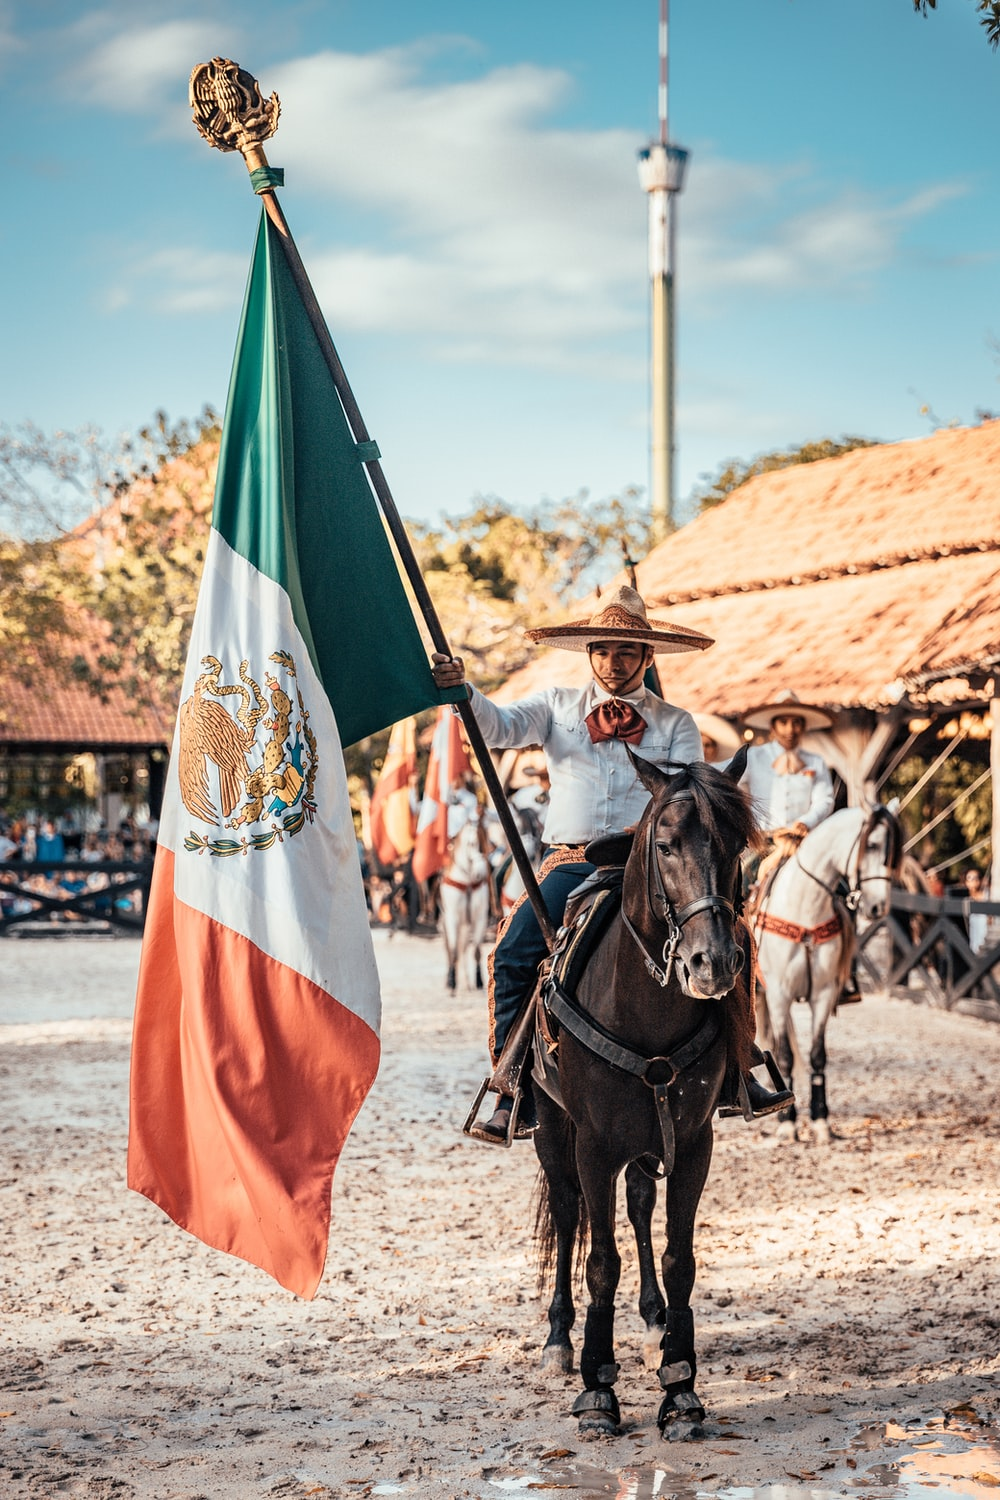 man riding on horse while holding flag of Mexico